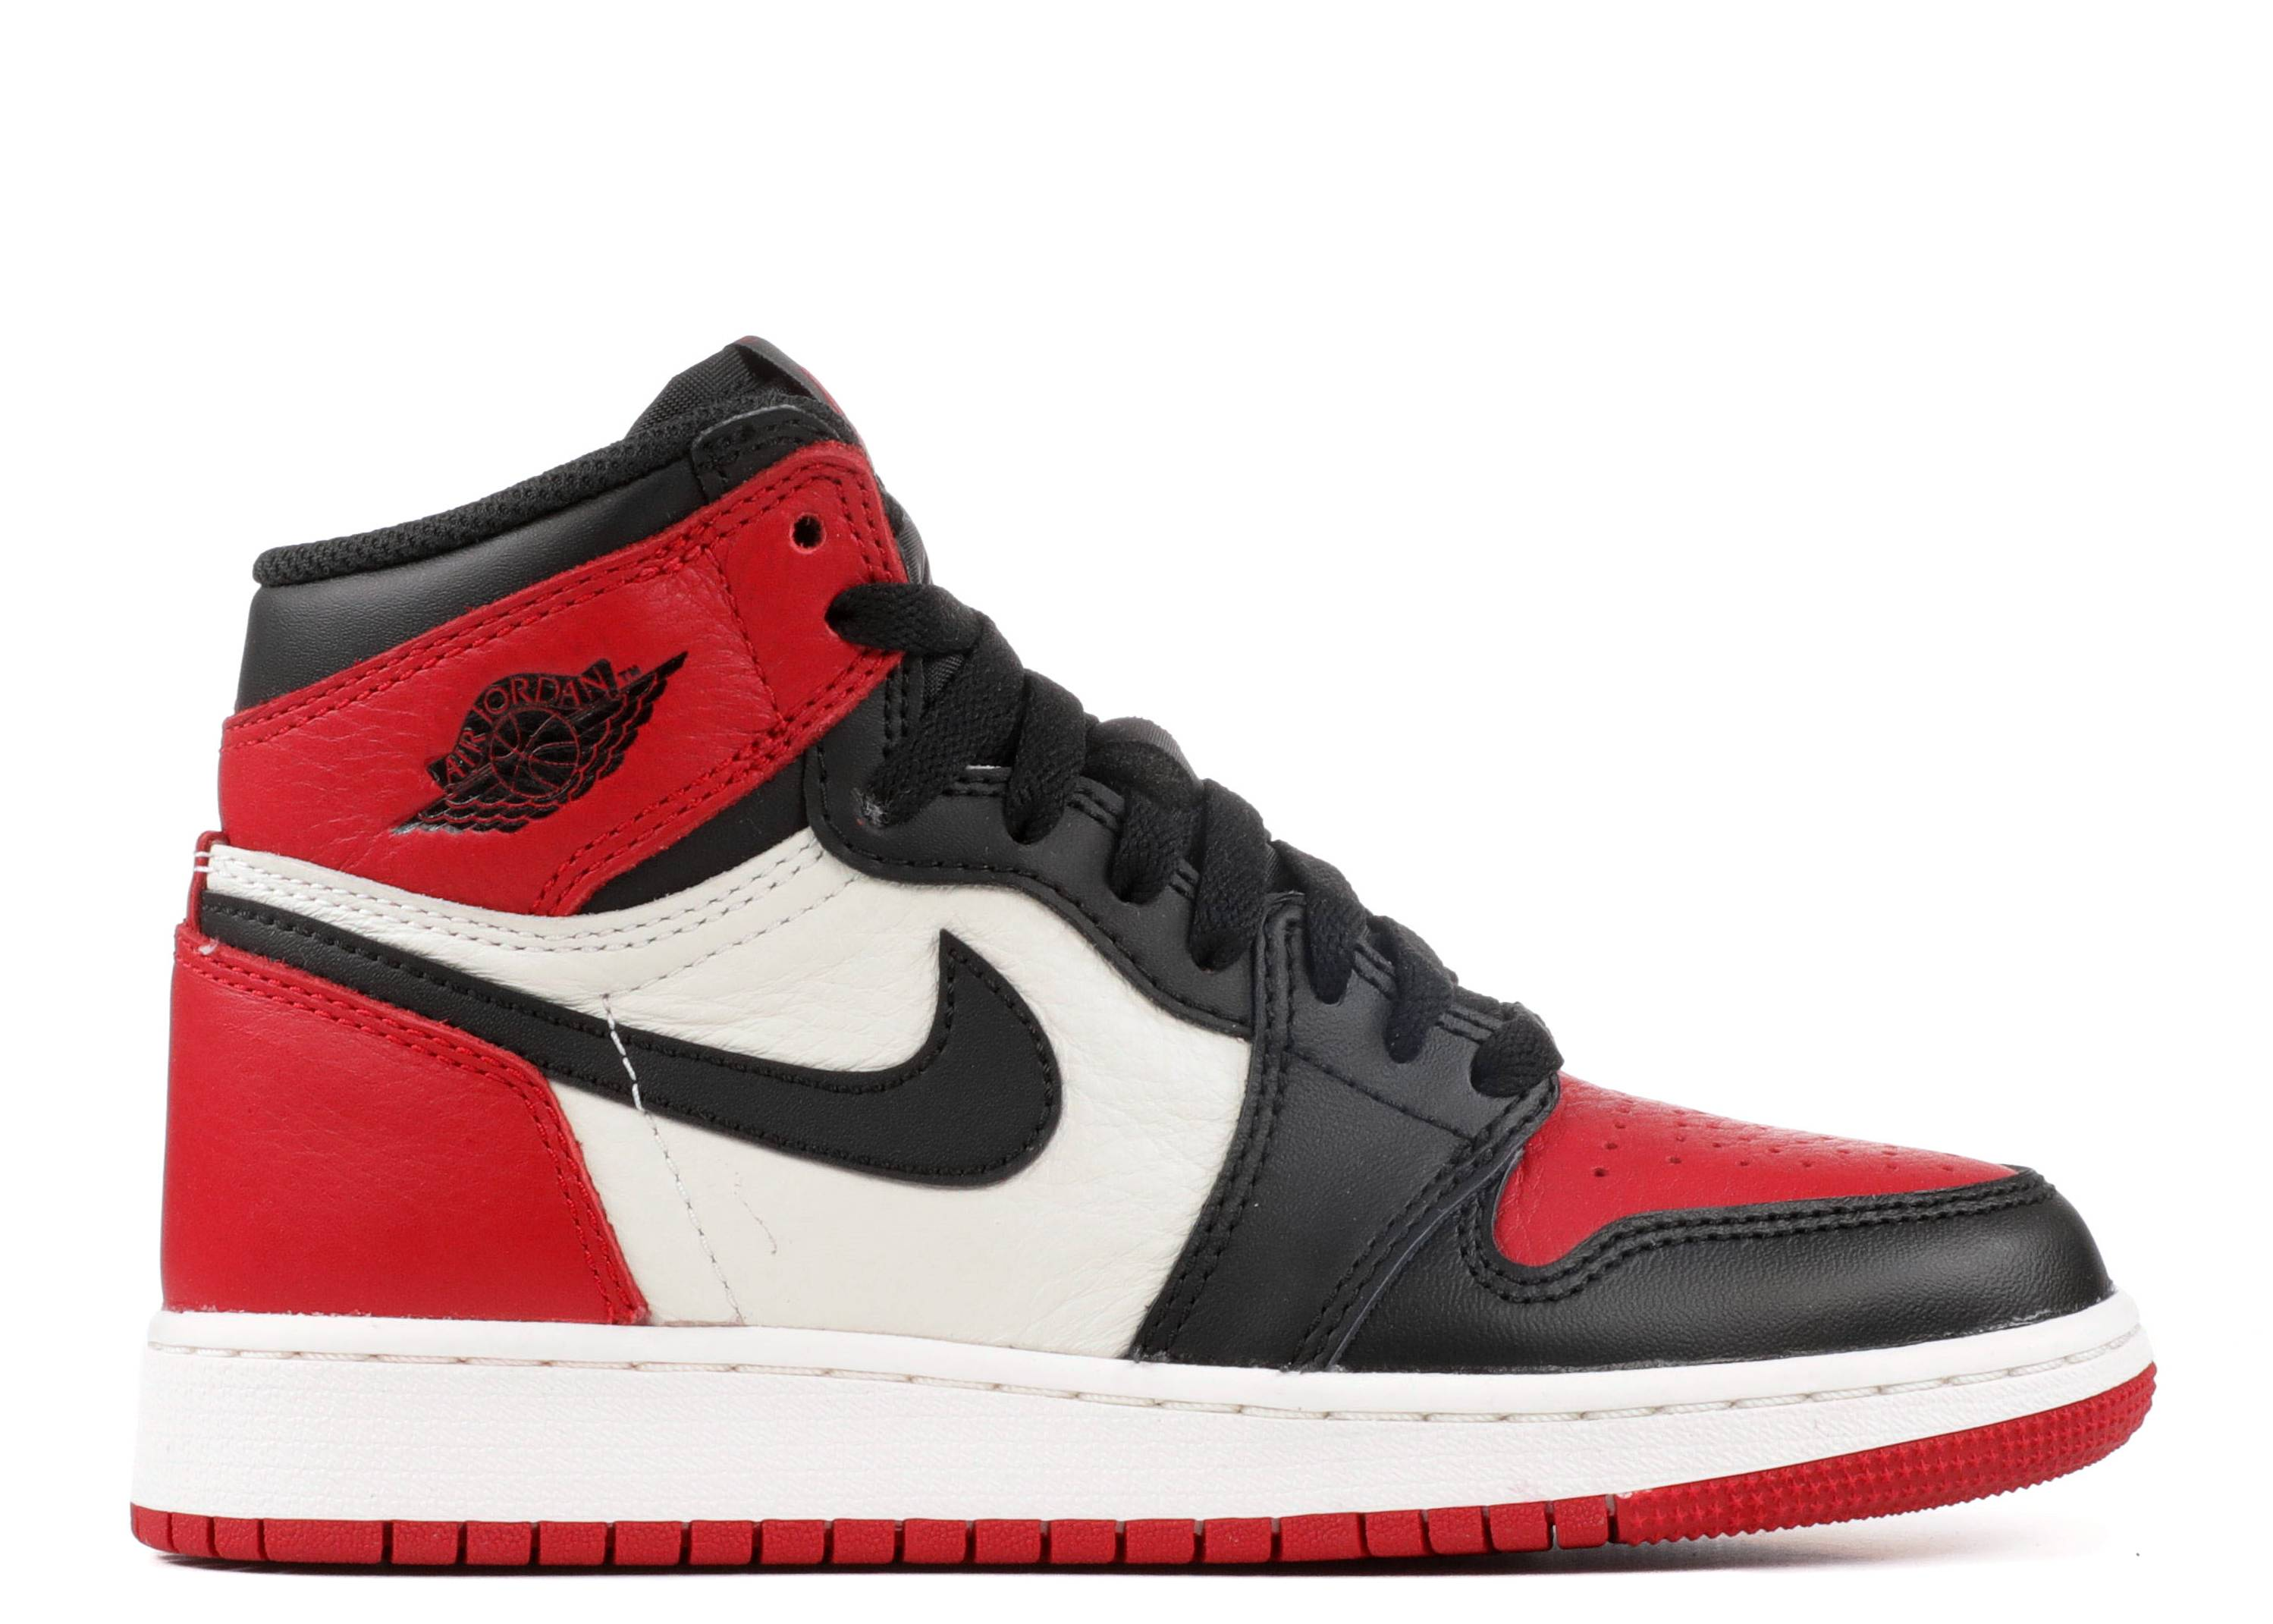 flight club air jordan 1 bred toe restock